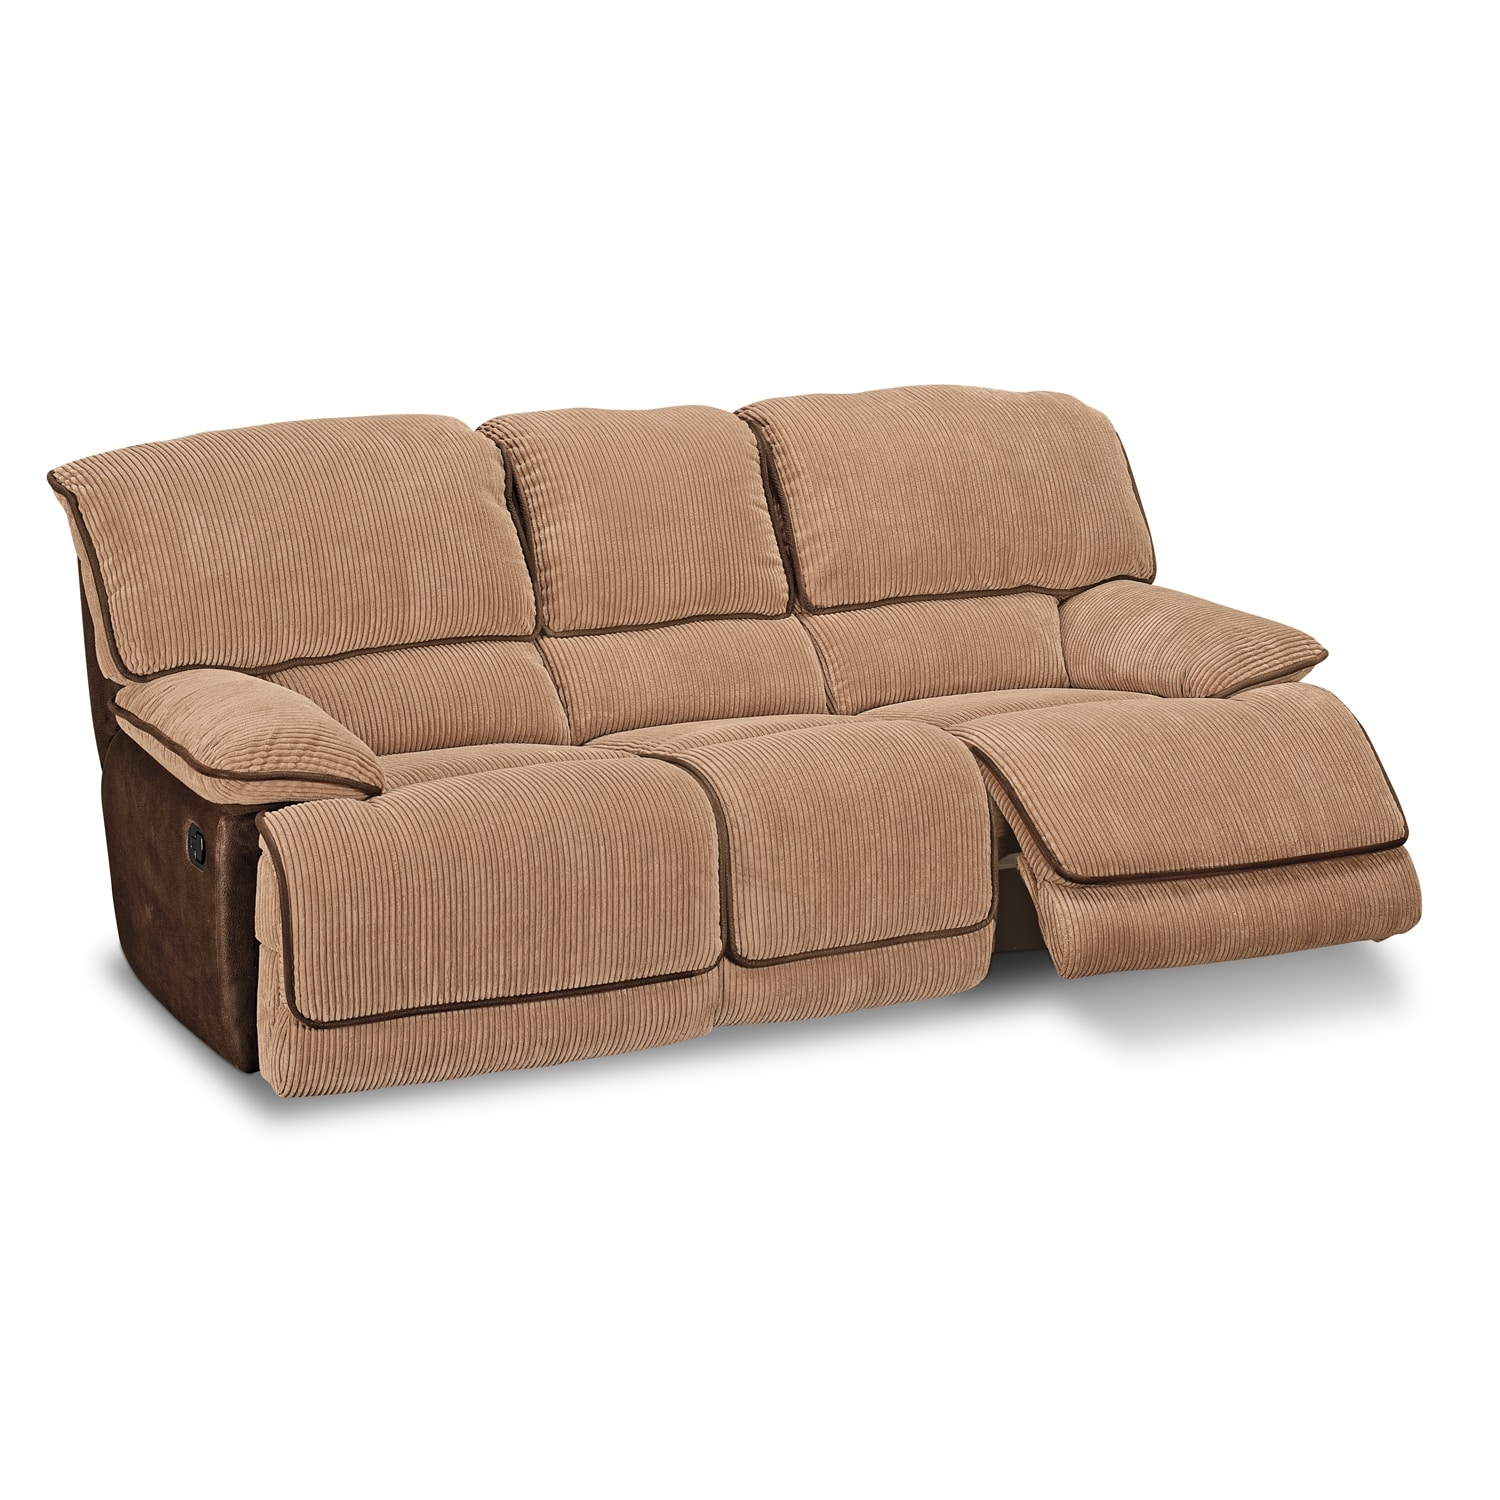 Laguna Upholstery Dual Reclining Sofa American Signature Furniture